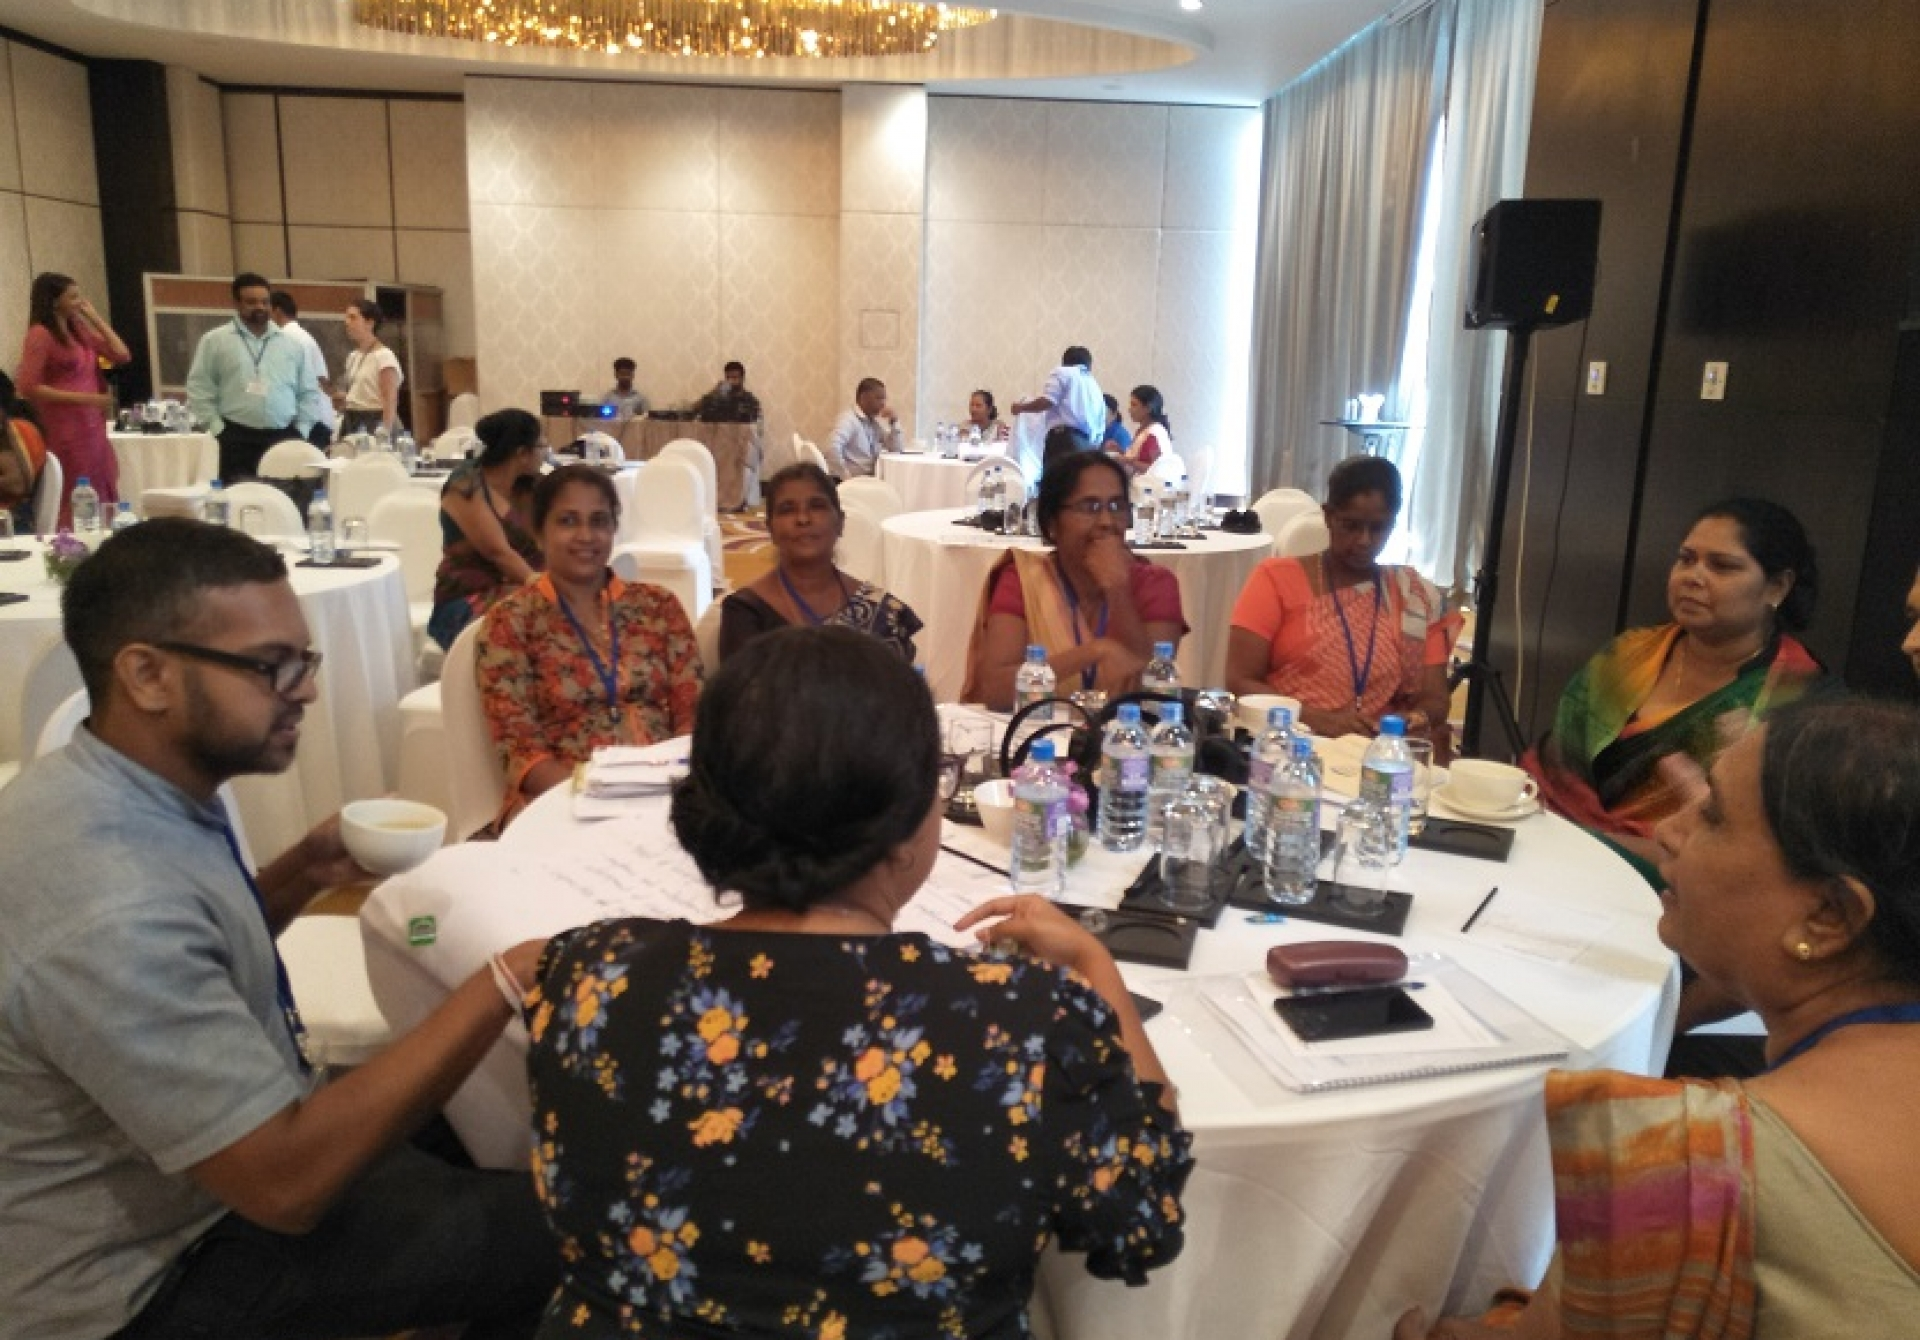 A National Consultation On The Global Compact On Migration (GCM) Sri Lanka organized by the American Solidarity Center was held at Colombo Movenpick Hotlel on July 29th and 30th 2018